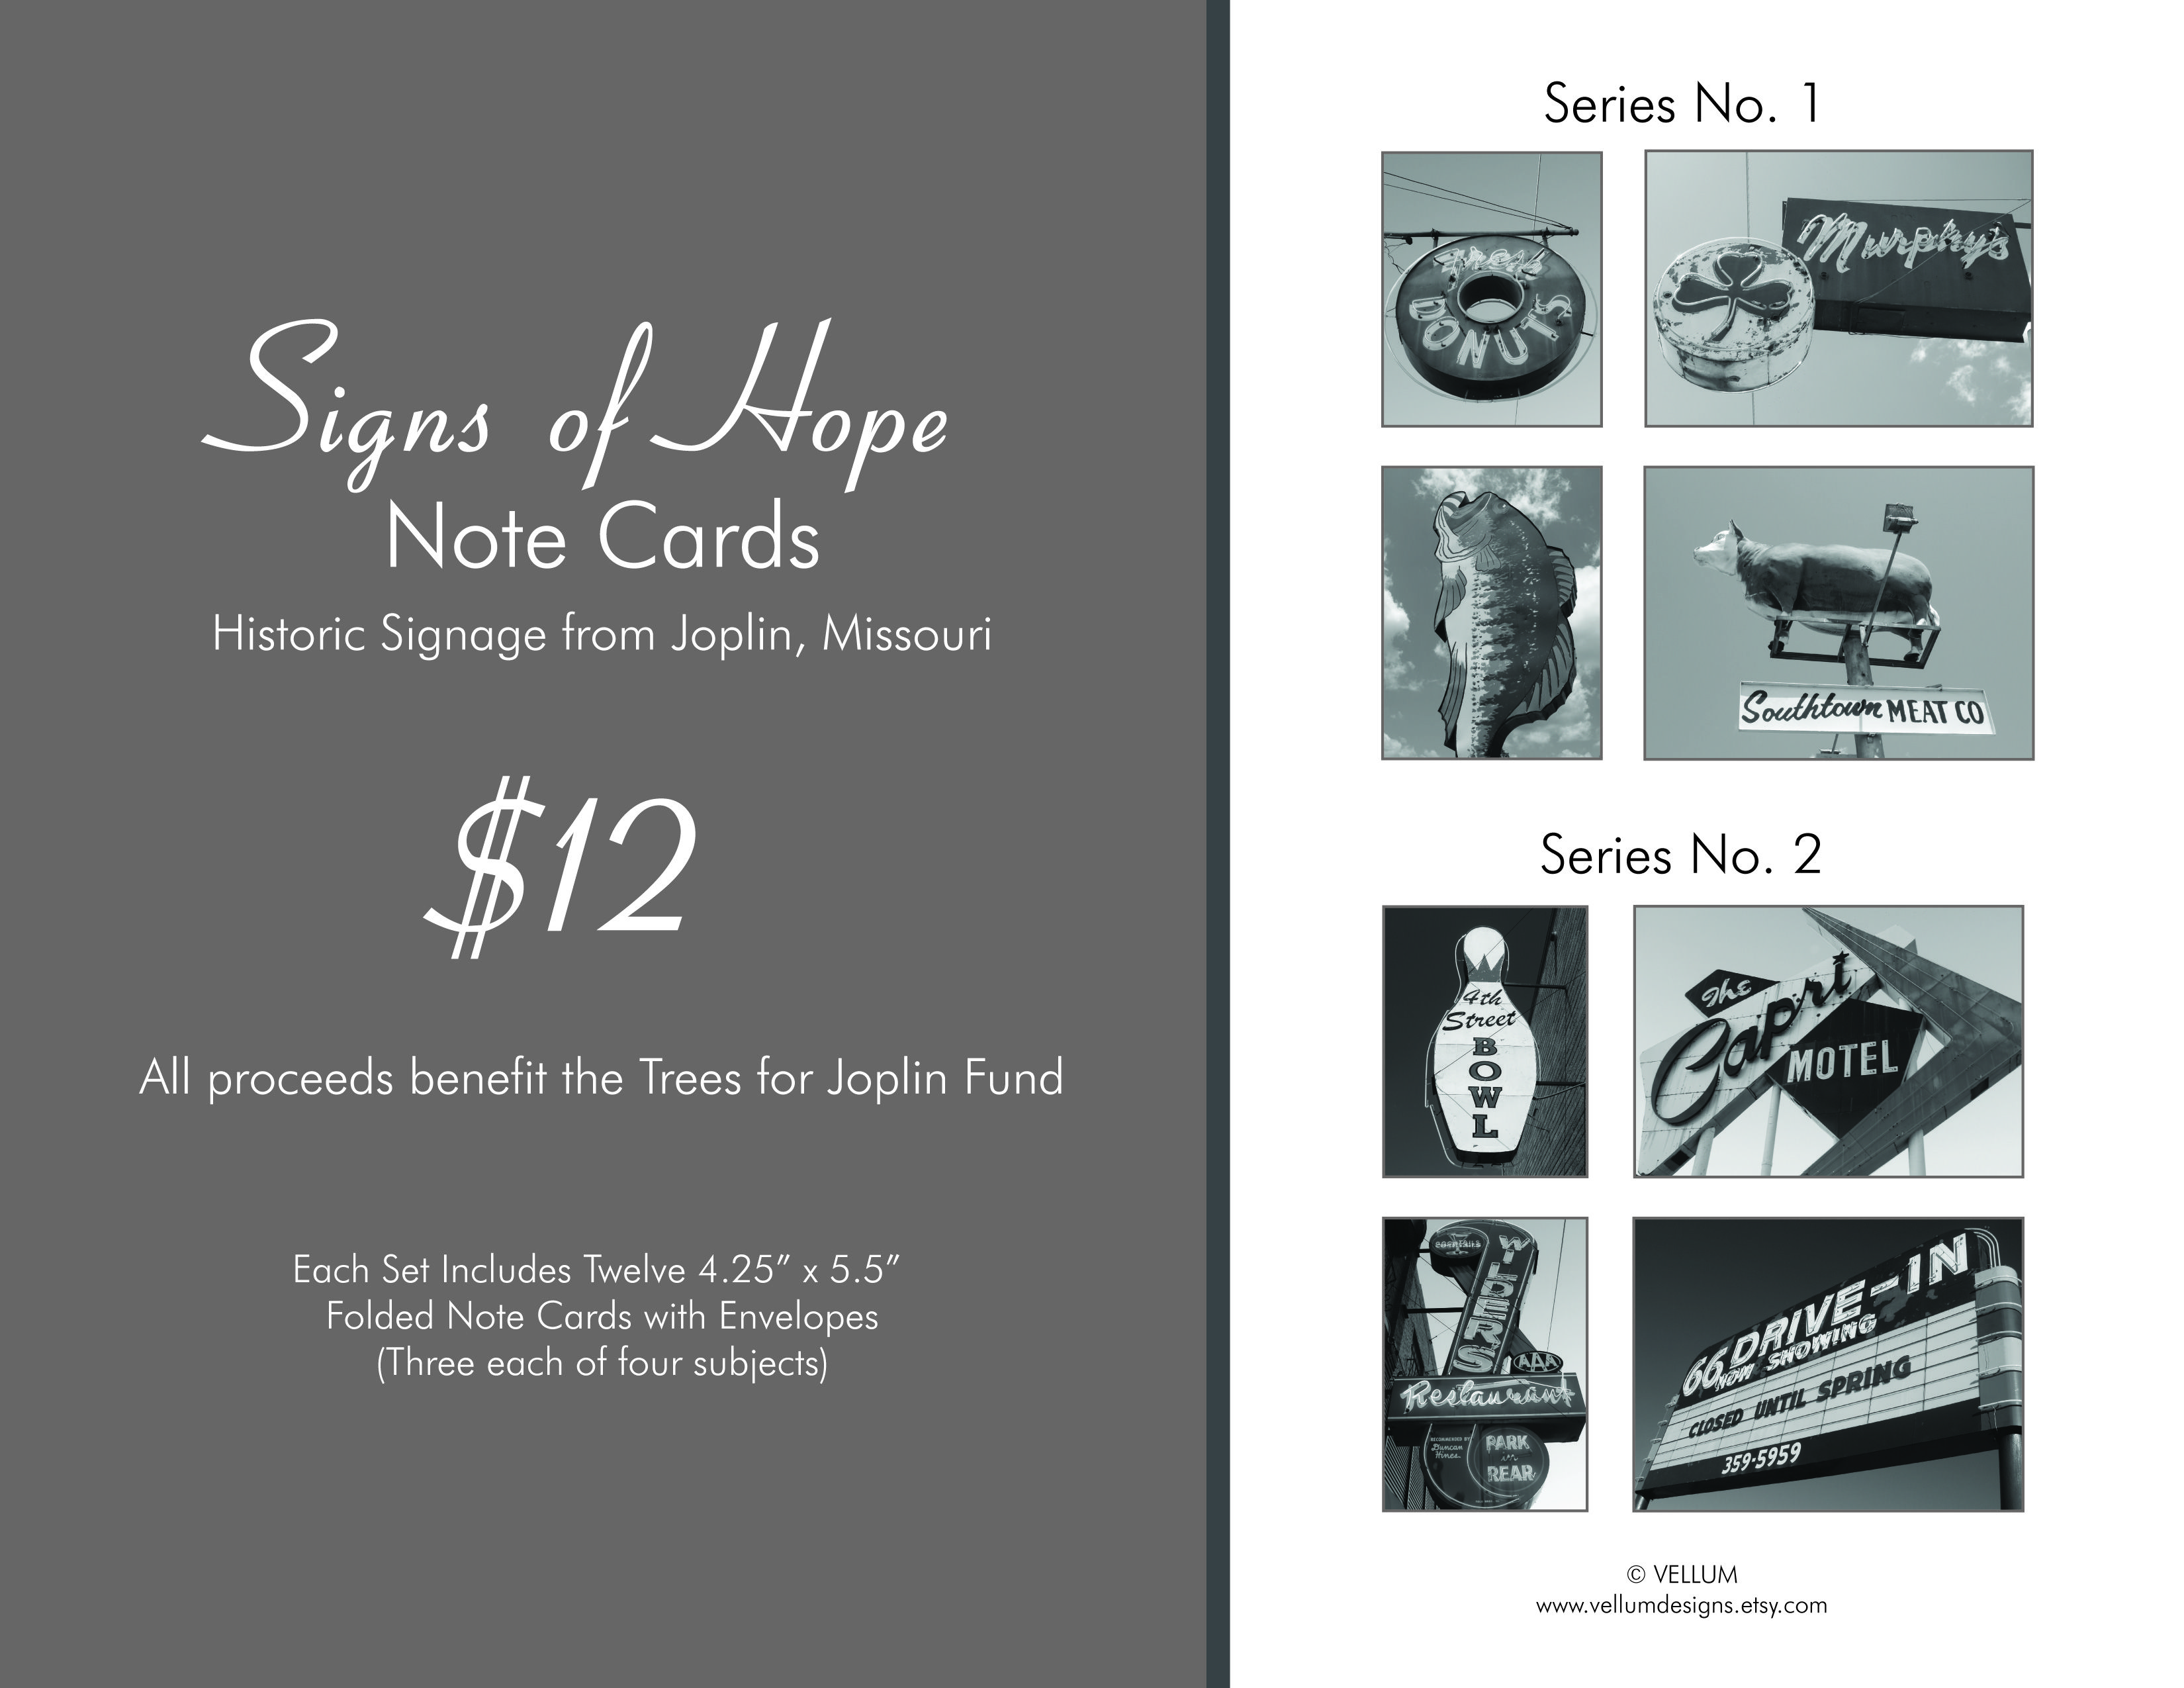 Cool note cards featuring Joplin's iconic signs  Benefits